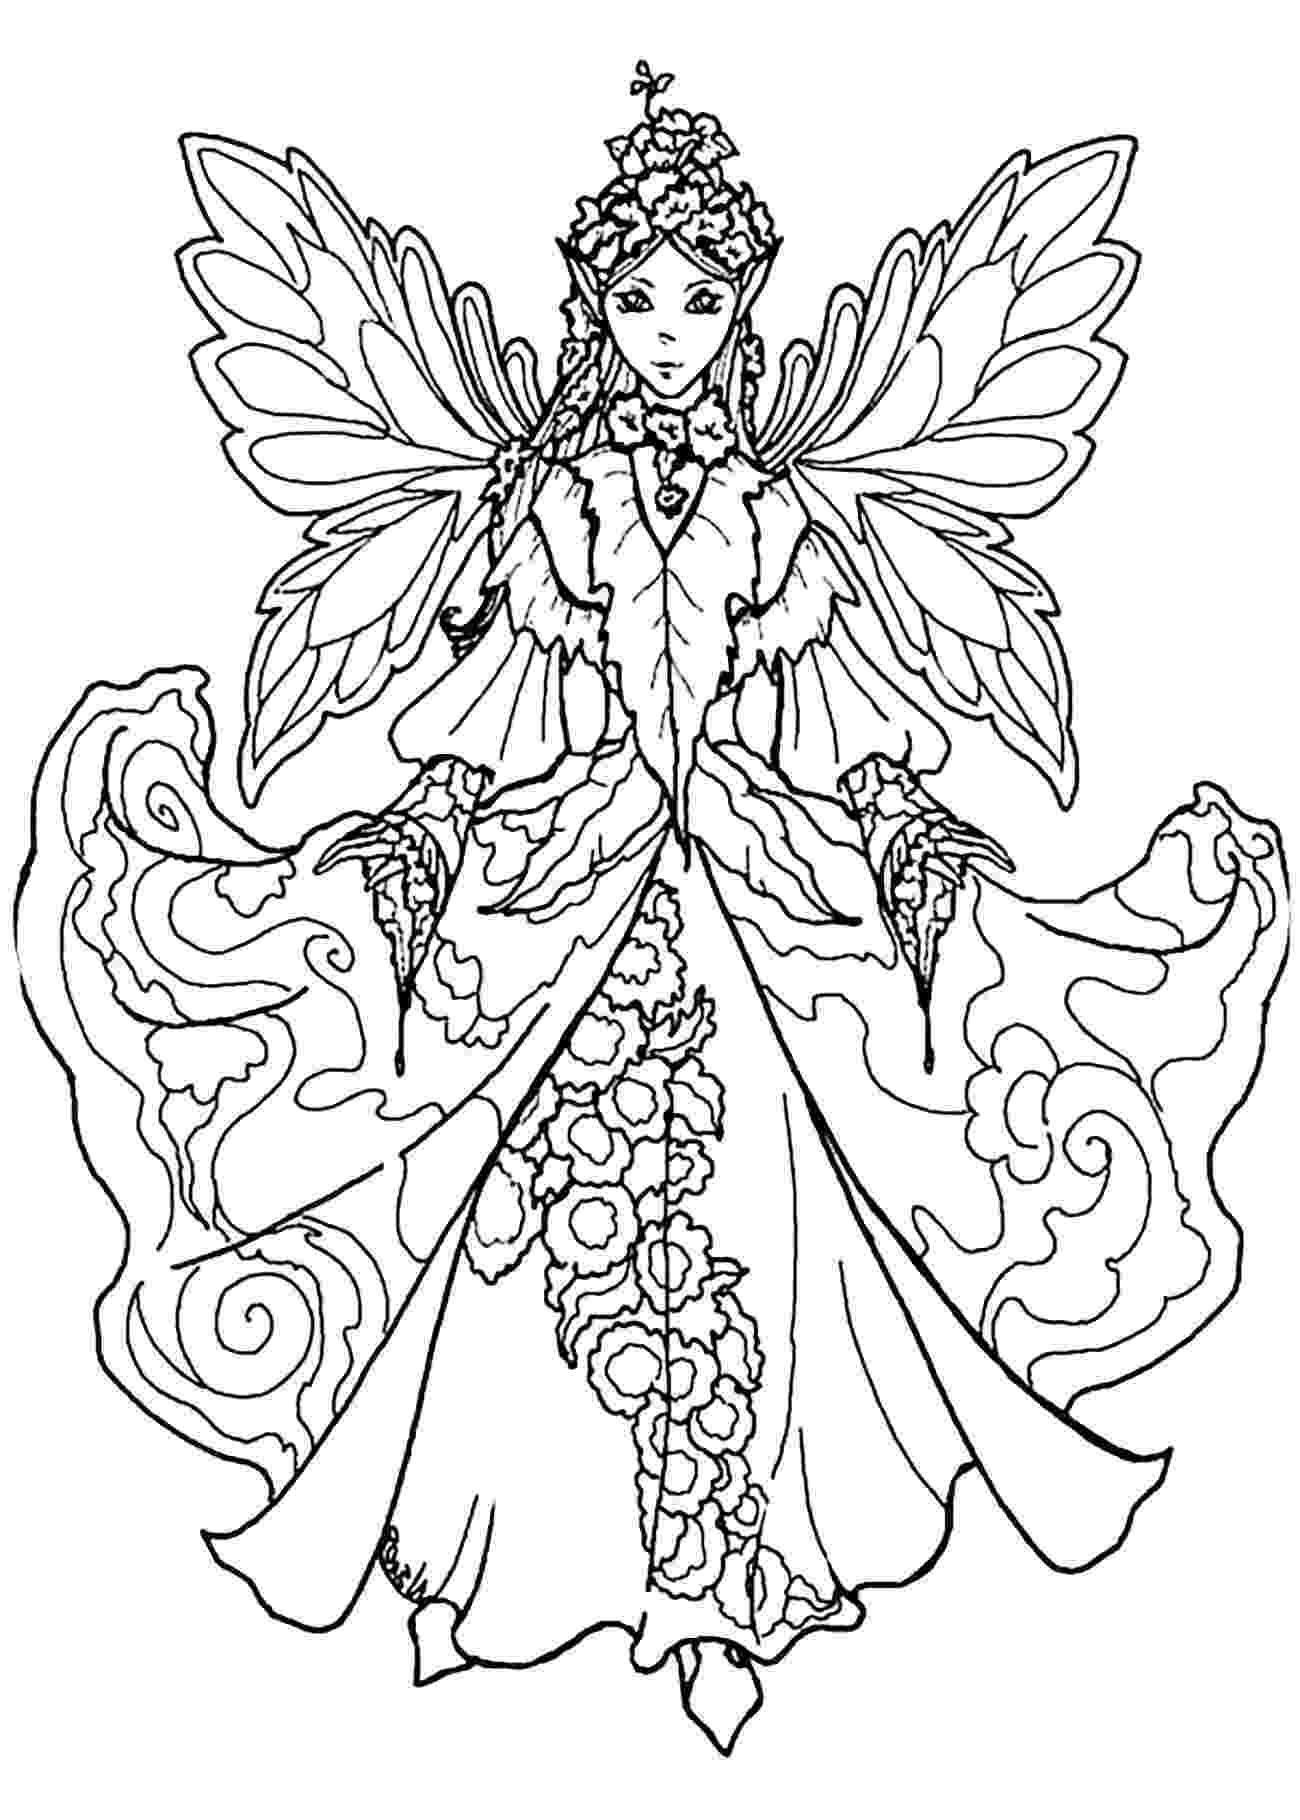 fairy pictures to color tooth fairy coloring pages to download and print for free fairy pictures to color